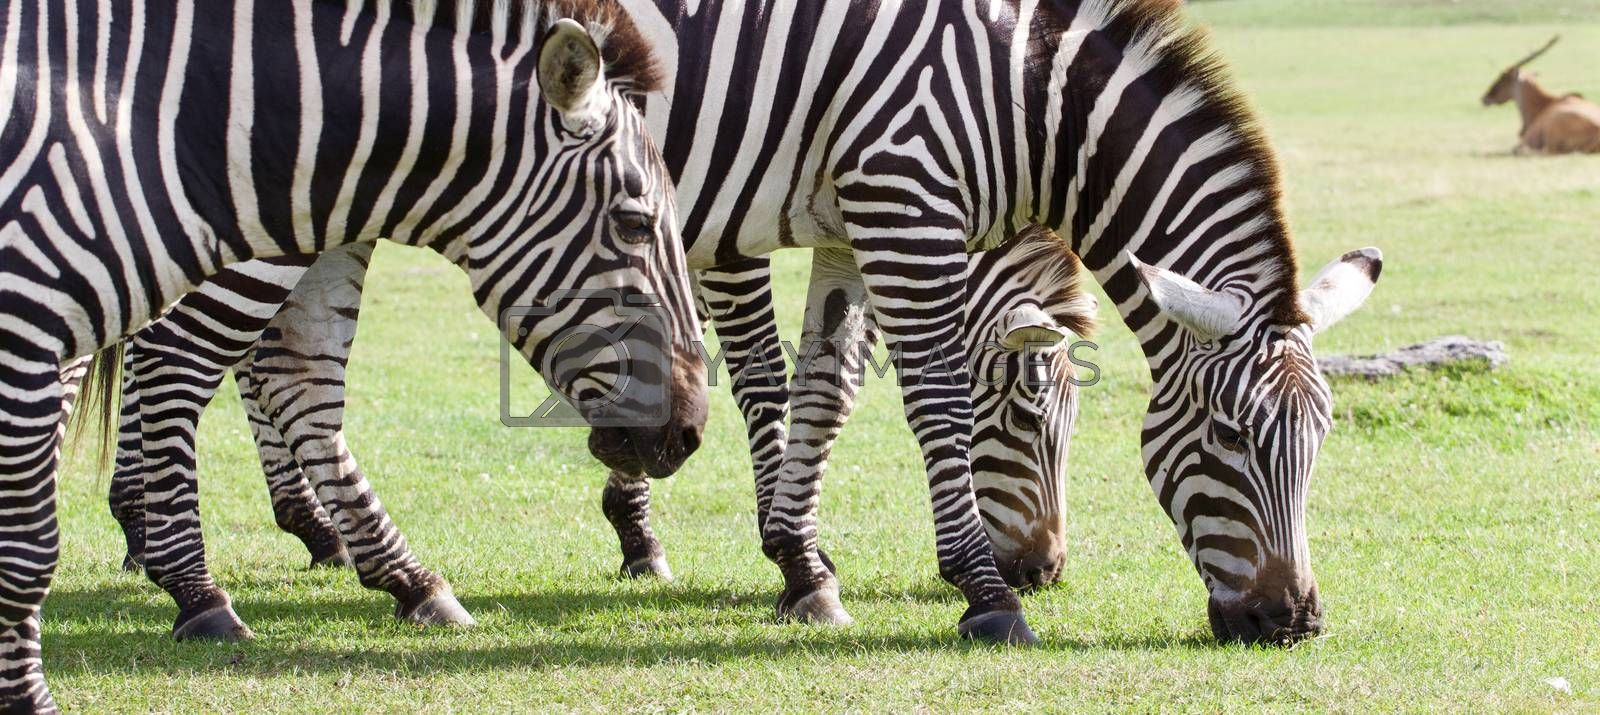 Three beautiful zebras together on the grass field